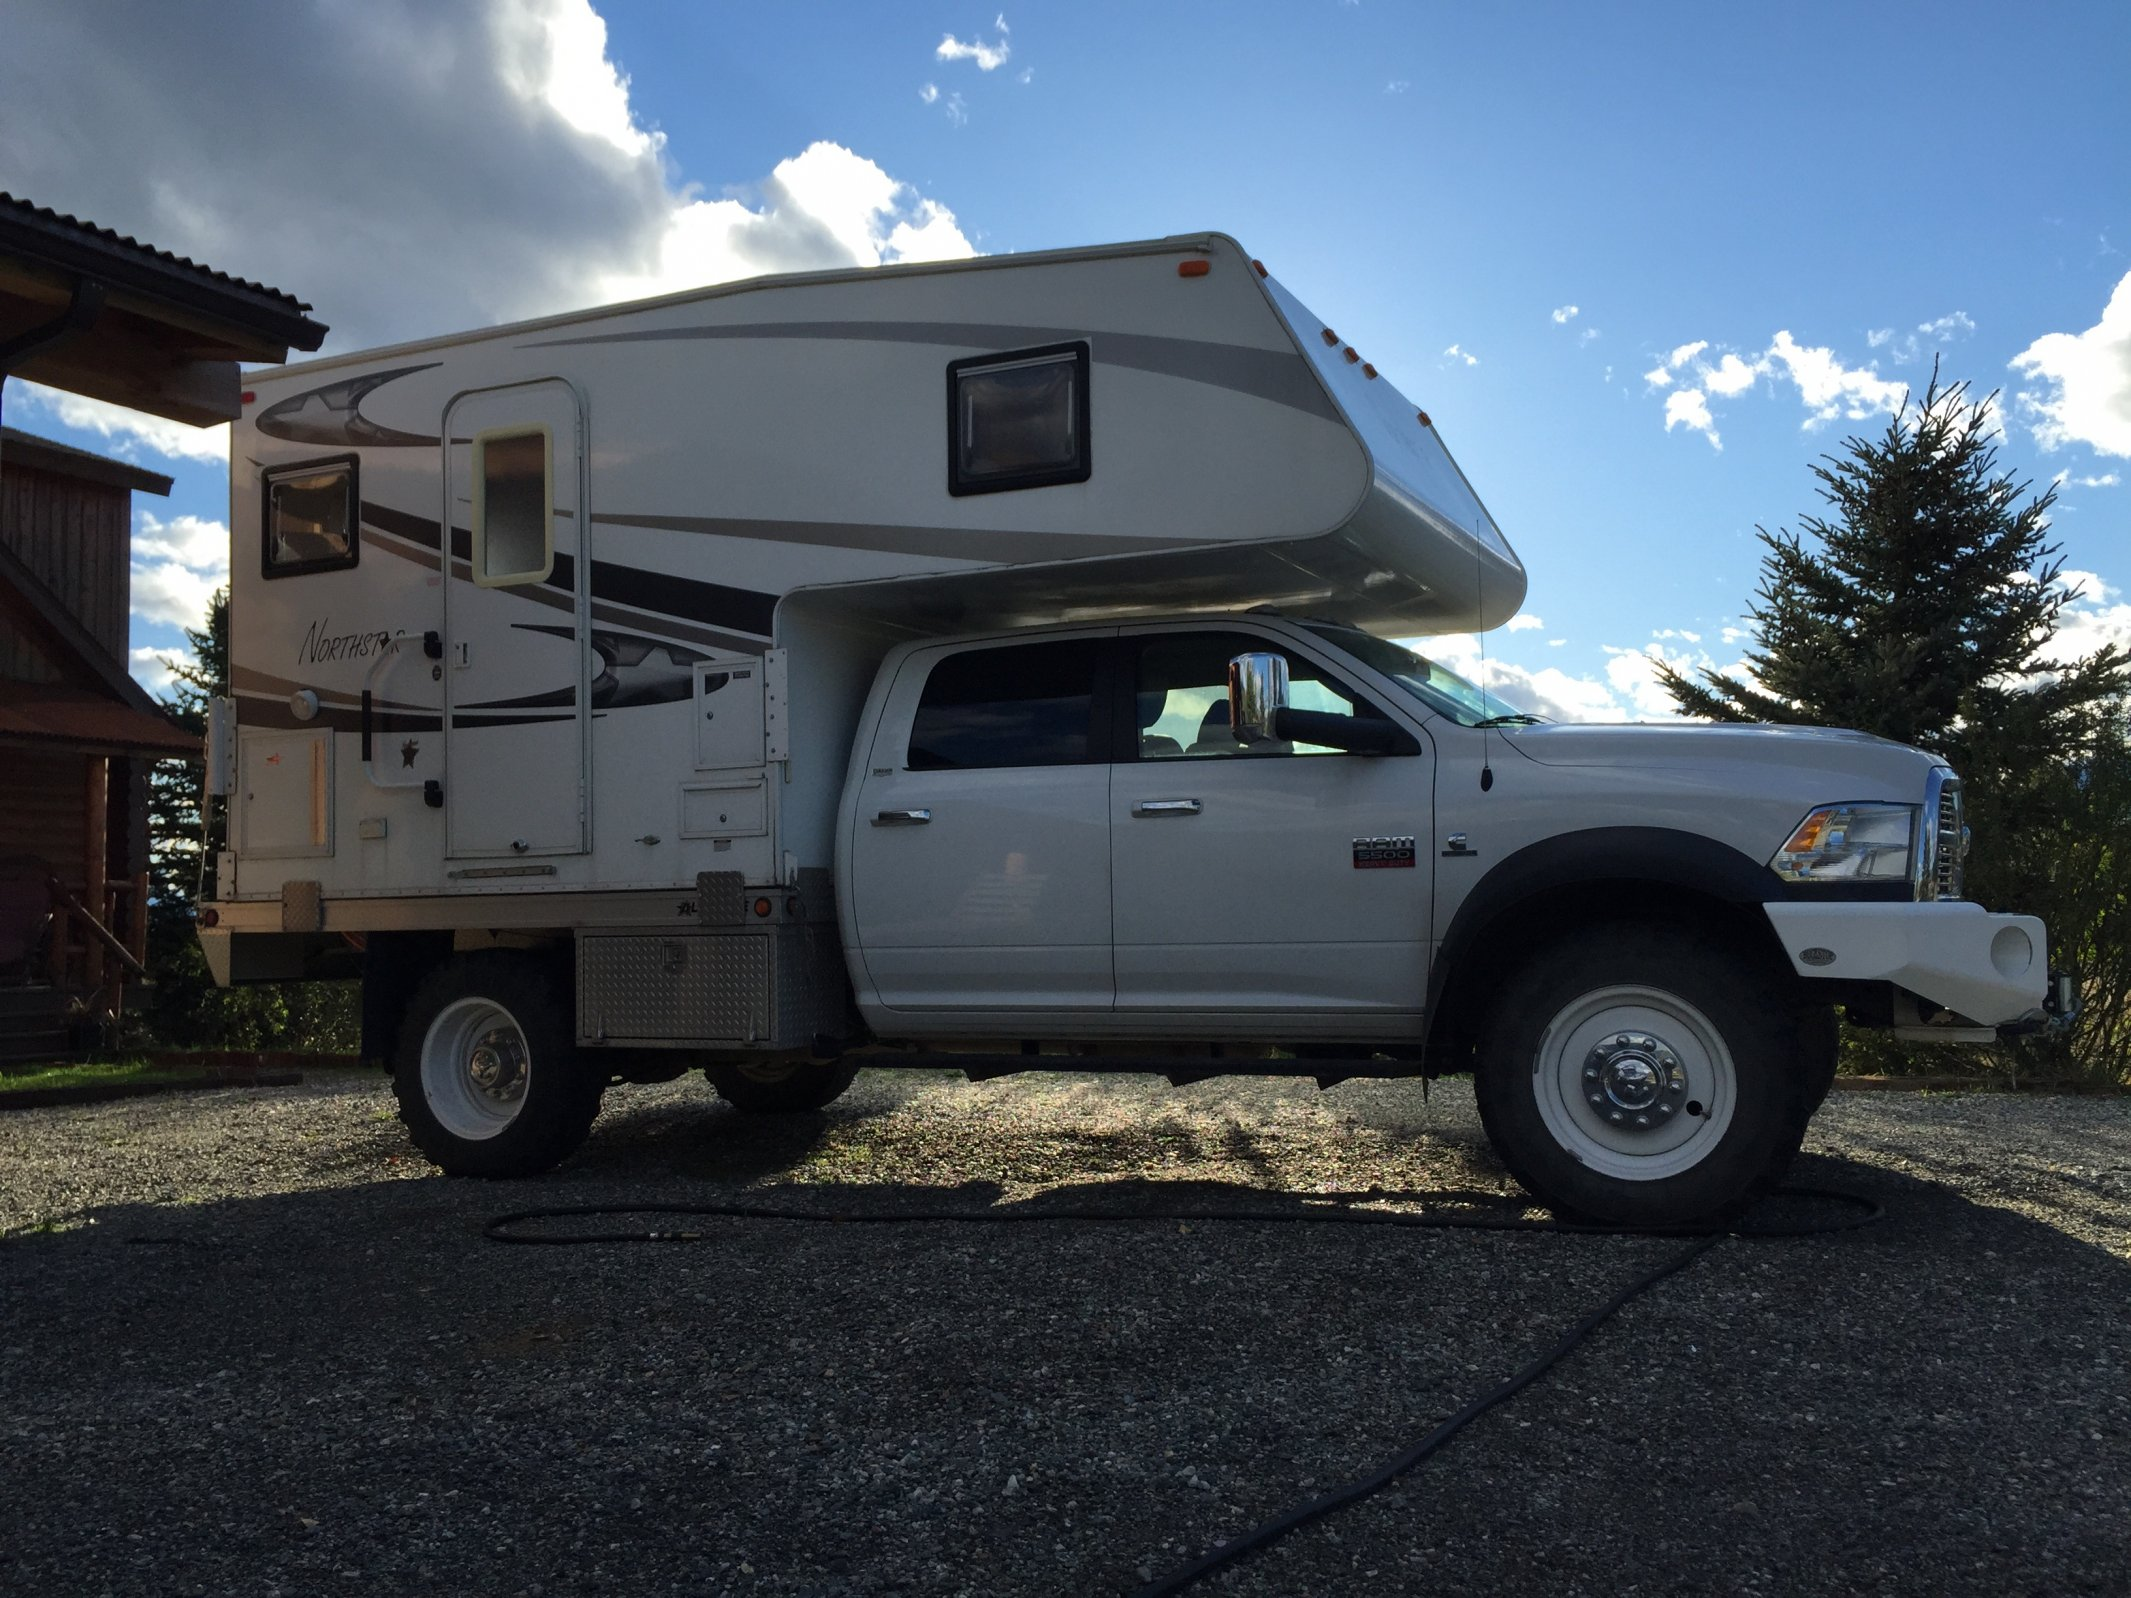 Sold Ram 5500 Flatbed Camper New Pics Interior Price Dropped May Sell Parts Expedition Portal